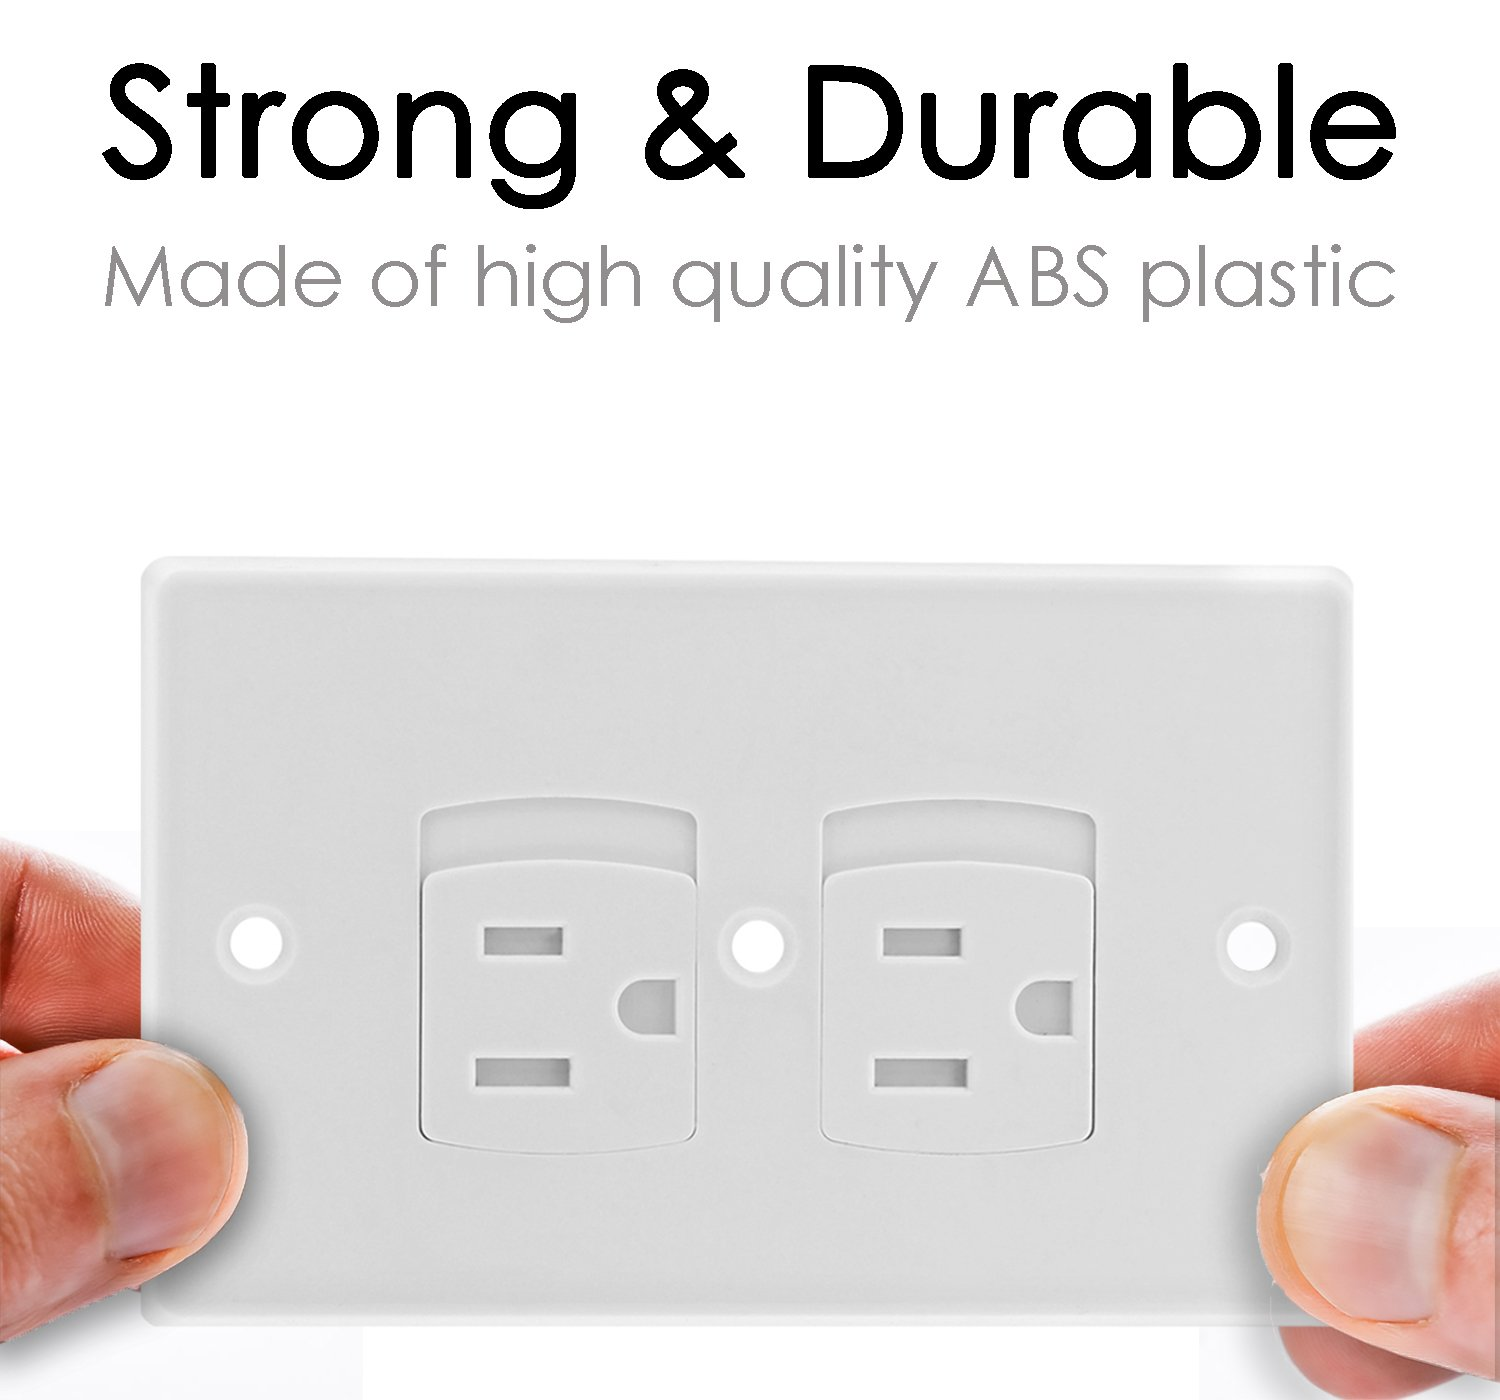 Self Closing Electrical Outlet Covers, Child Proof Safety Universal Wall Socket Plugs, Automatic Sliding Cap Cover Standard Wall Outlet Plate (8 Pack) by Baby Dröm (Image #5)